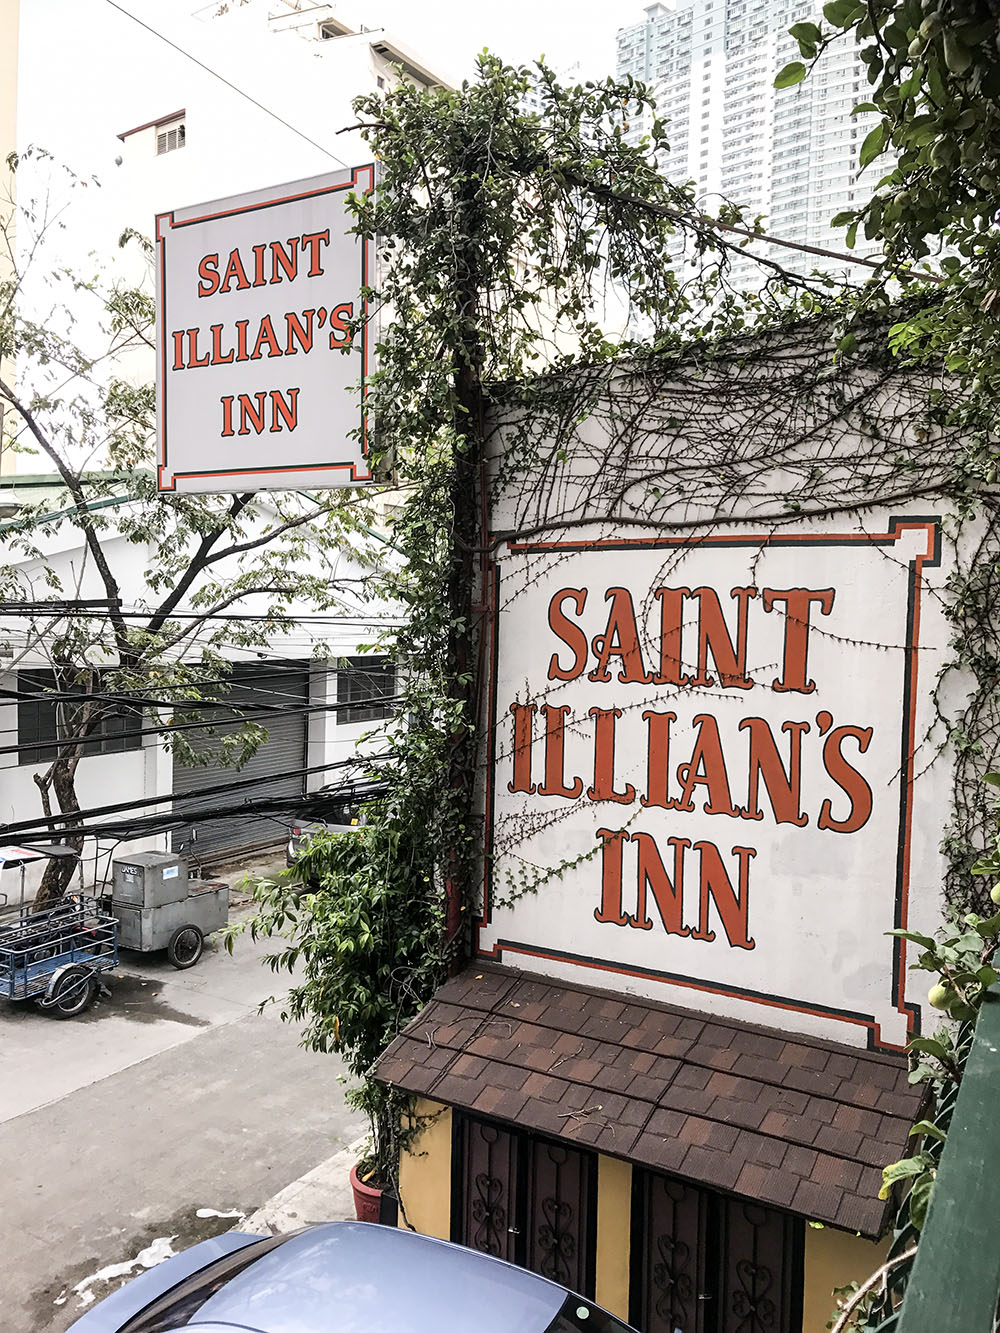 Another Affordable Hotel in Makati - Saint  Illians Inn